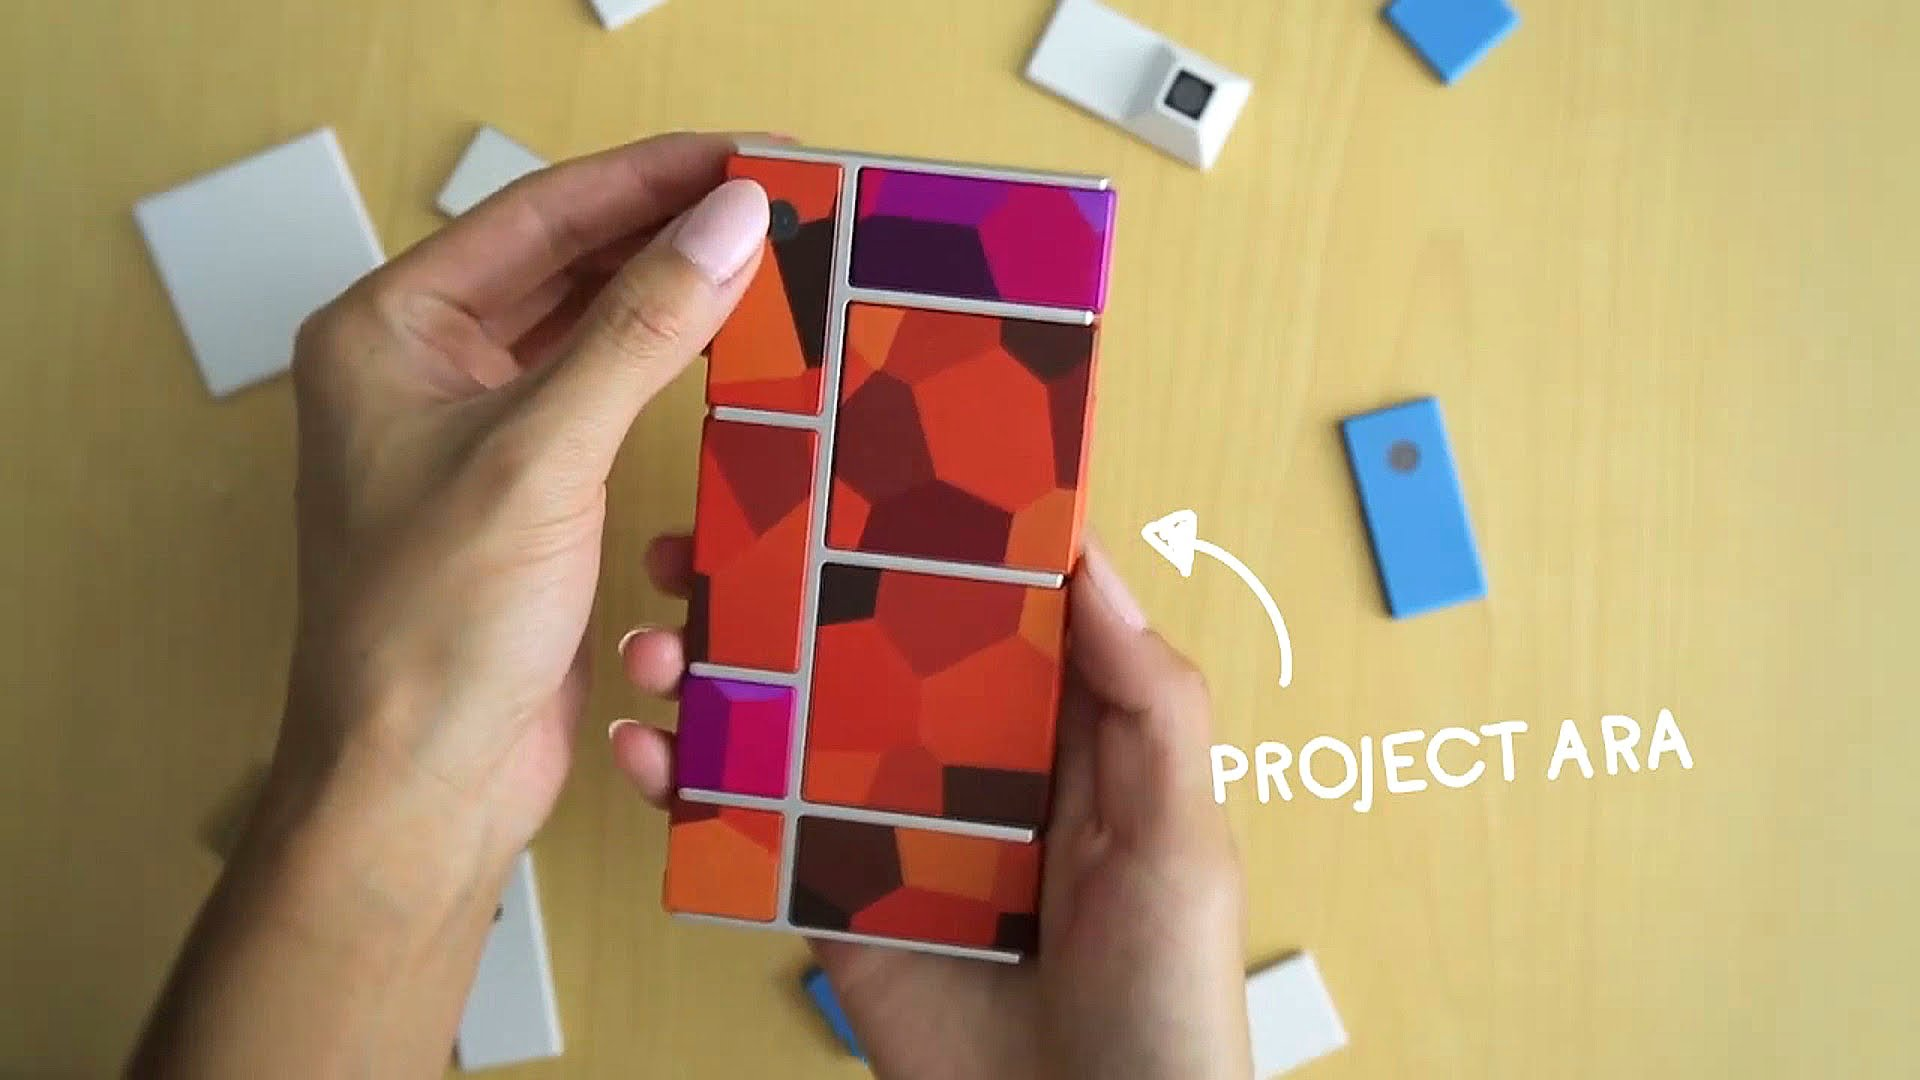 Developers can now apply for a PROJECT ARA development board